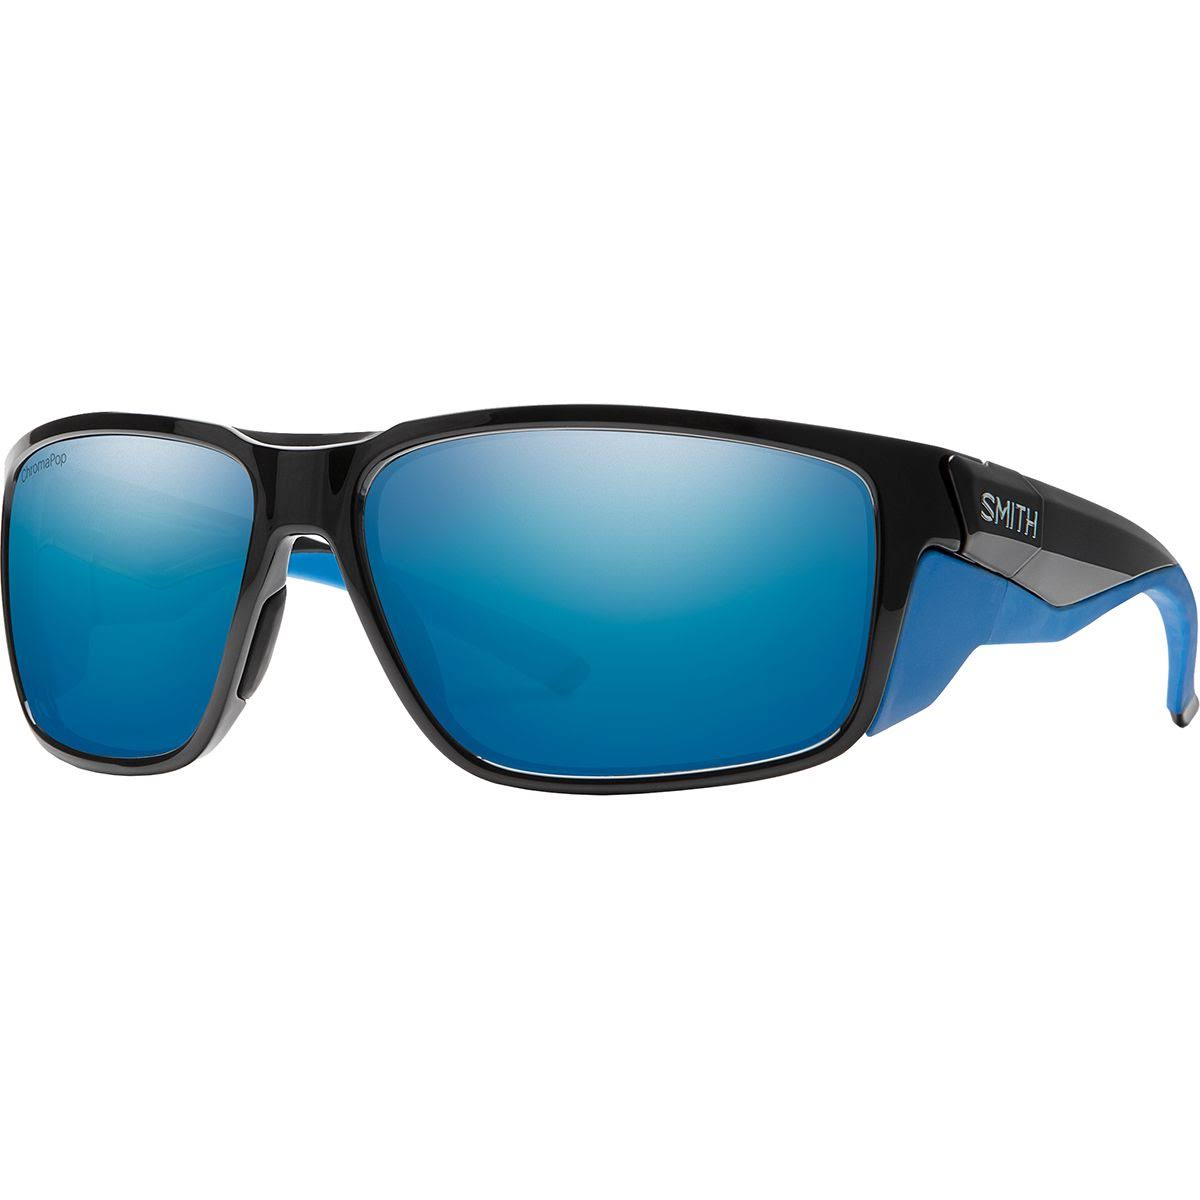 Smith Freespool Mag Sunglasses - Black (0807QG)